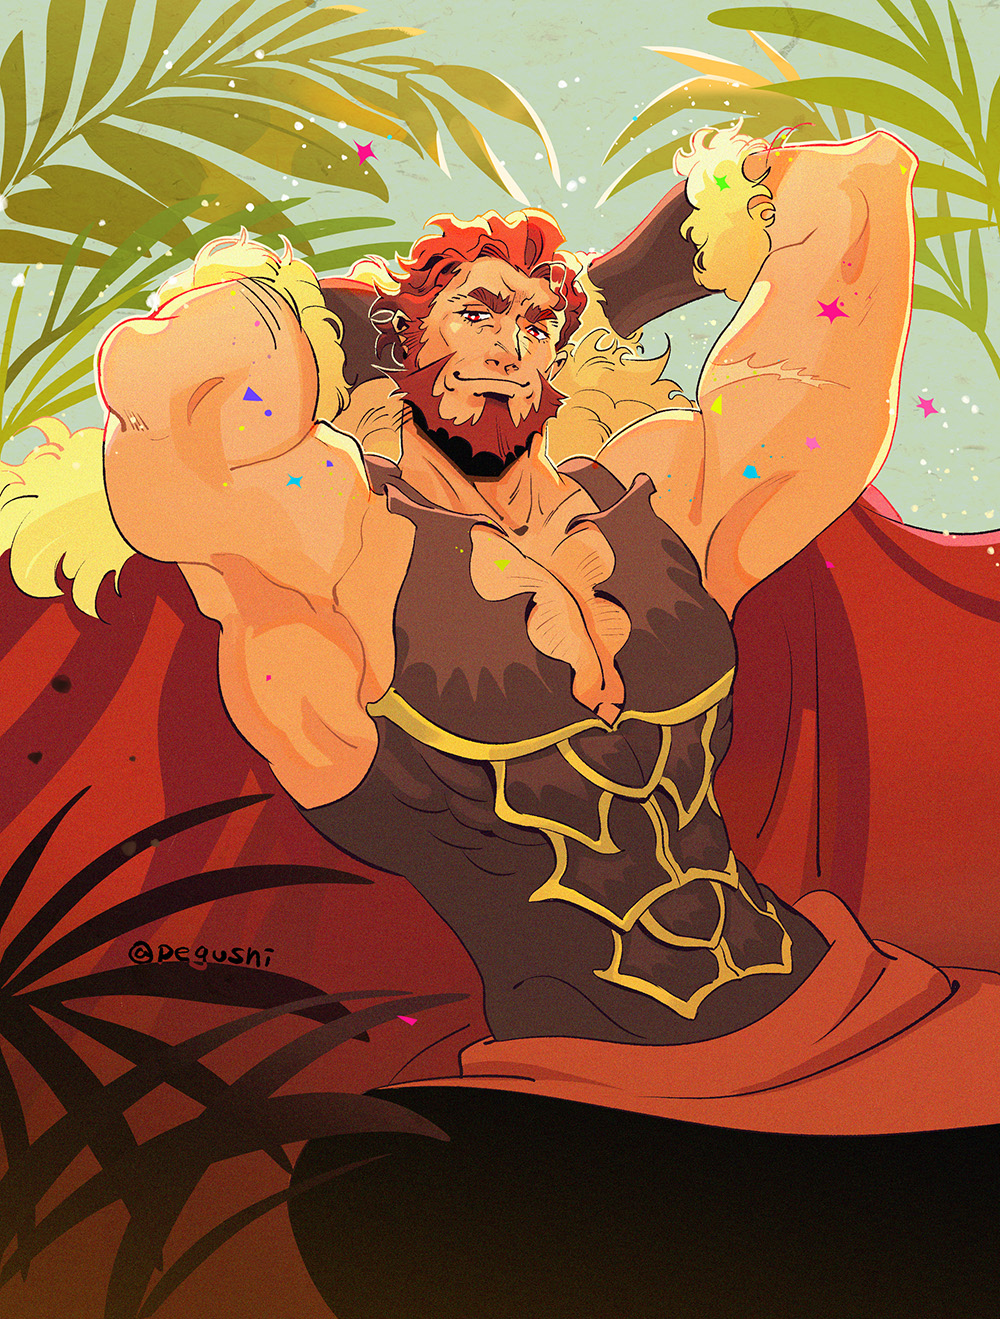 1boy armpits arms_behind_head bara beard breastplate cape chest chest_hair cleavage_cutout clothing_cutout facial_hair fate/grand_order fate/zero fate_(series) fur-trimmed_cape fur_trim highres iskandar_(fate) leather looking_at_viewer male_focus manly muscle pegushi plant raised_eyebrow red_cape red_eyes redhead short_hair smug solo sparkle upper_body